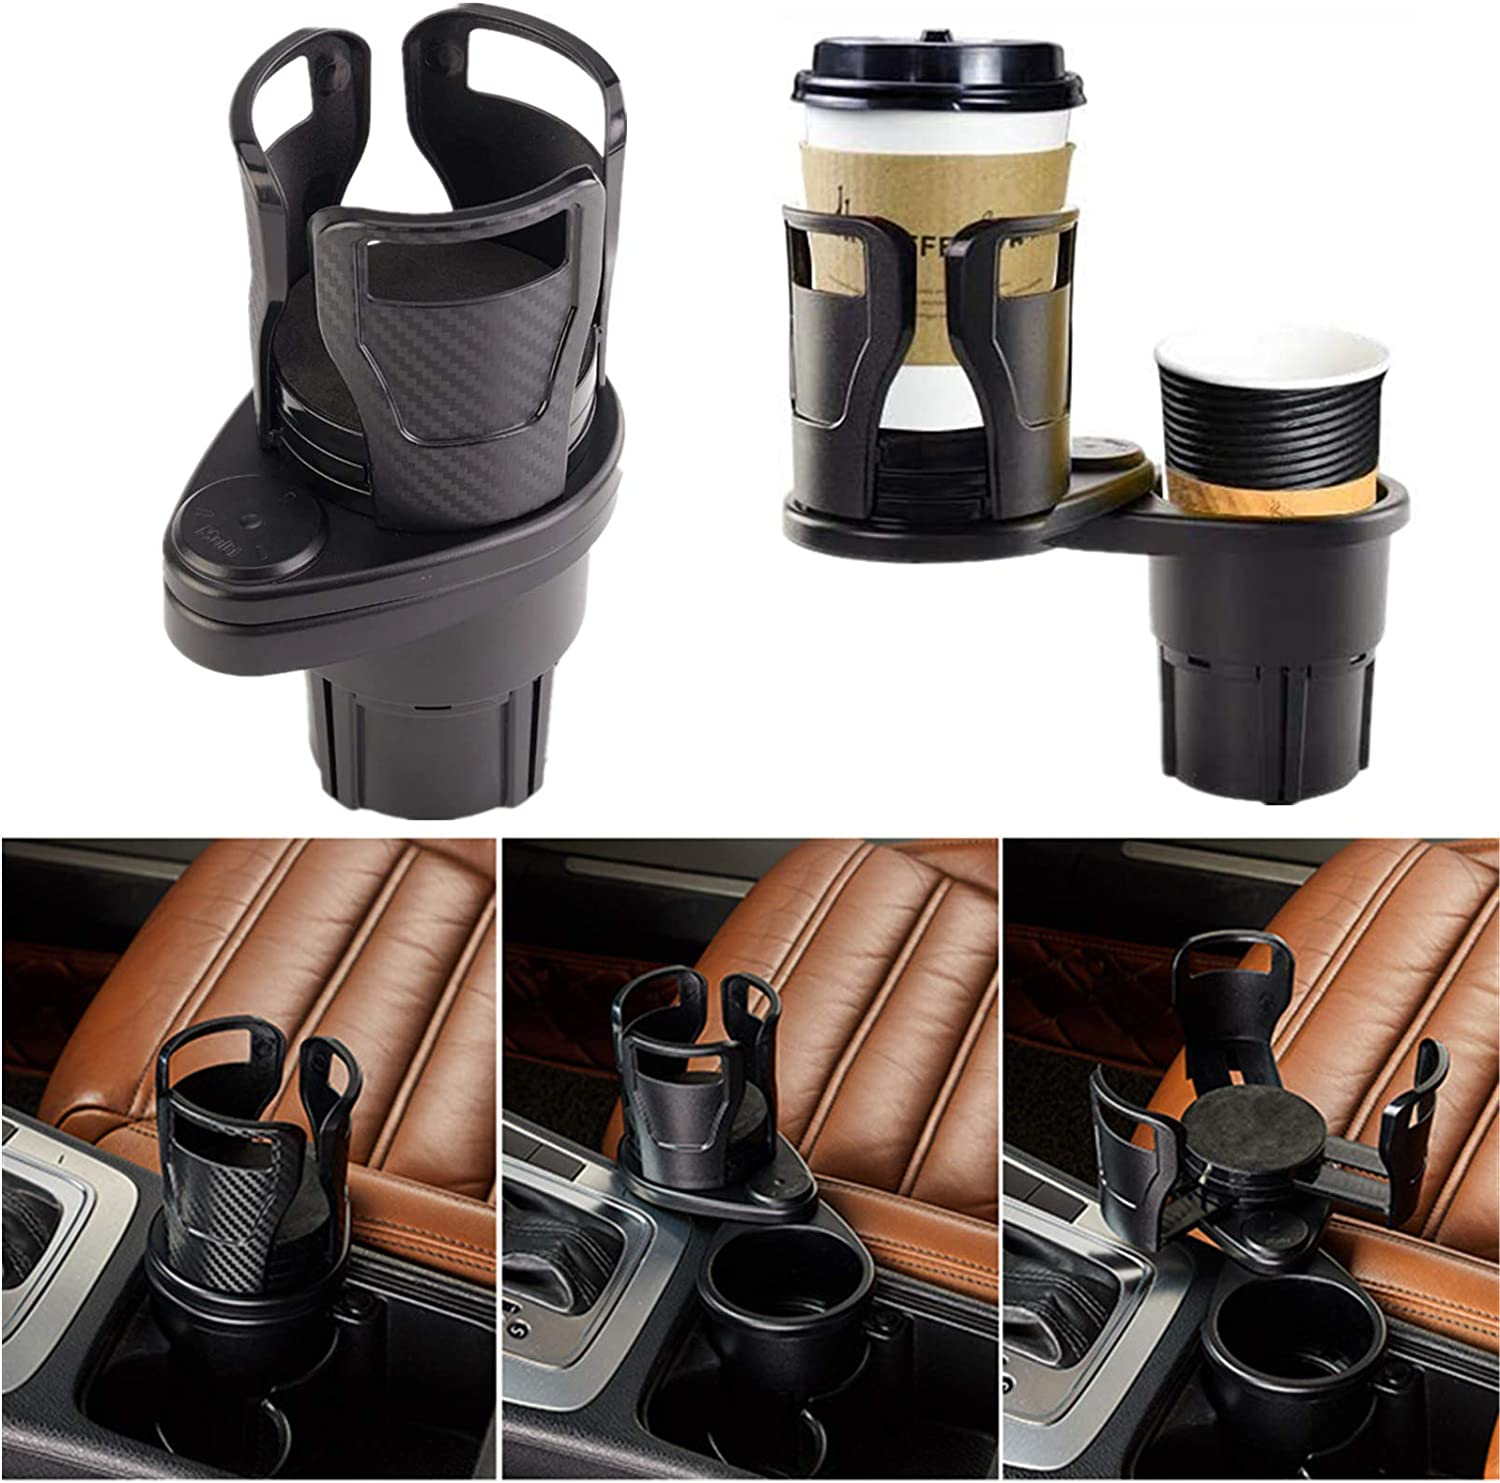 Xergur Multifunctional Car Cup Holder, 2 in 1 Adjustable Size Beverage HoldCarer, Mount Extender with 360° Rotating Adjustable Base to Hold Most Drink Bottles, Coffee and Food